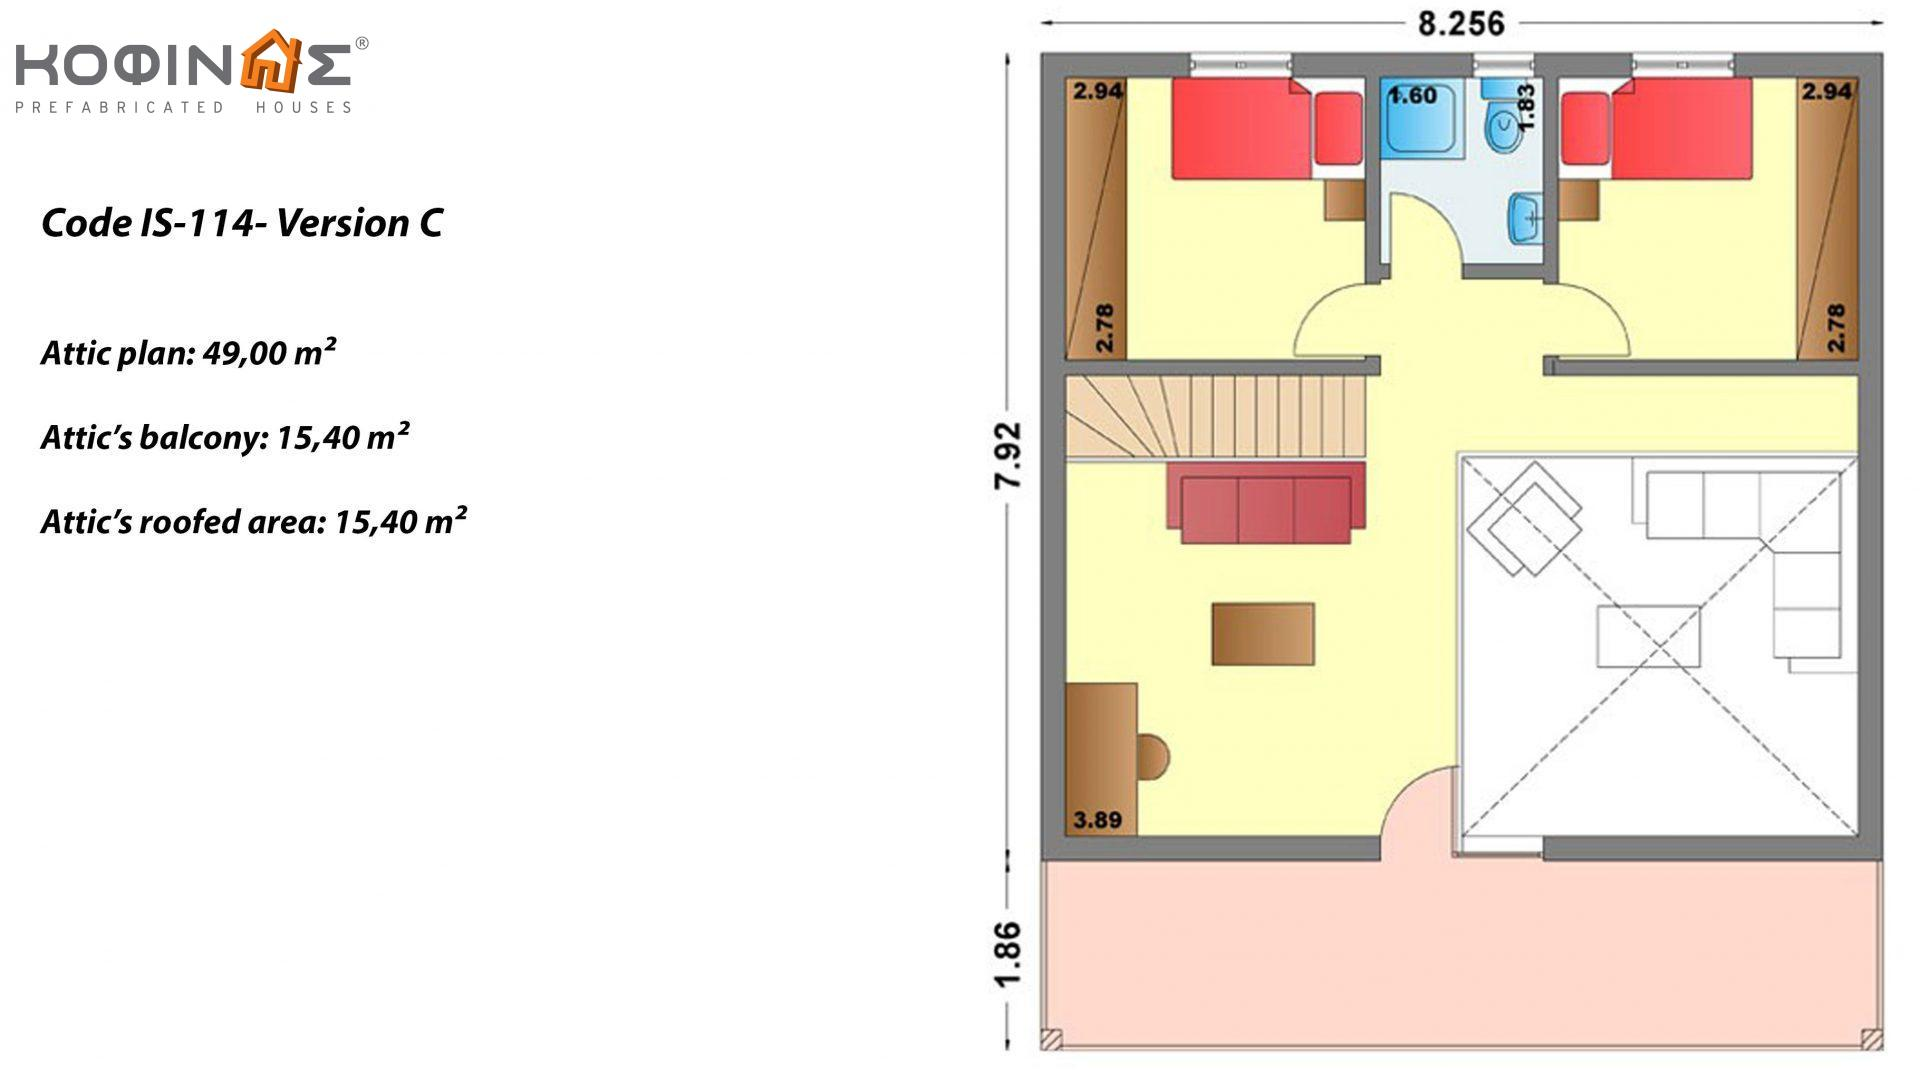 1-story house with attic IS-114, total surface of 114,40 m² ,totalling roofed areas  30,80 m², Attic's balcony 15,40 m²